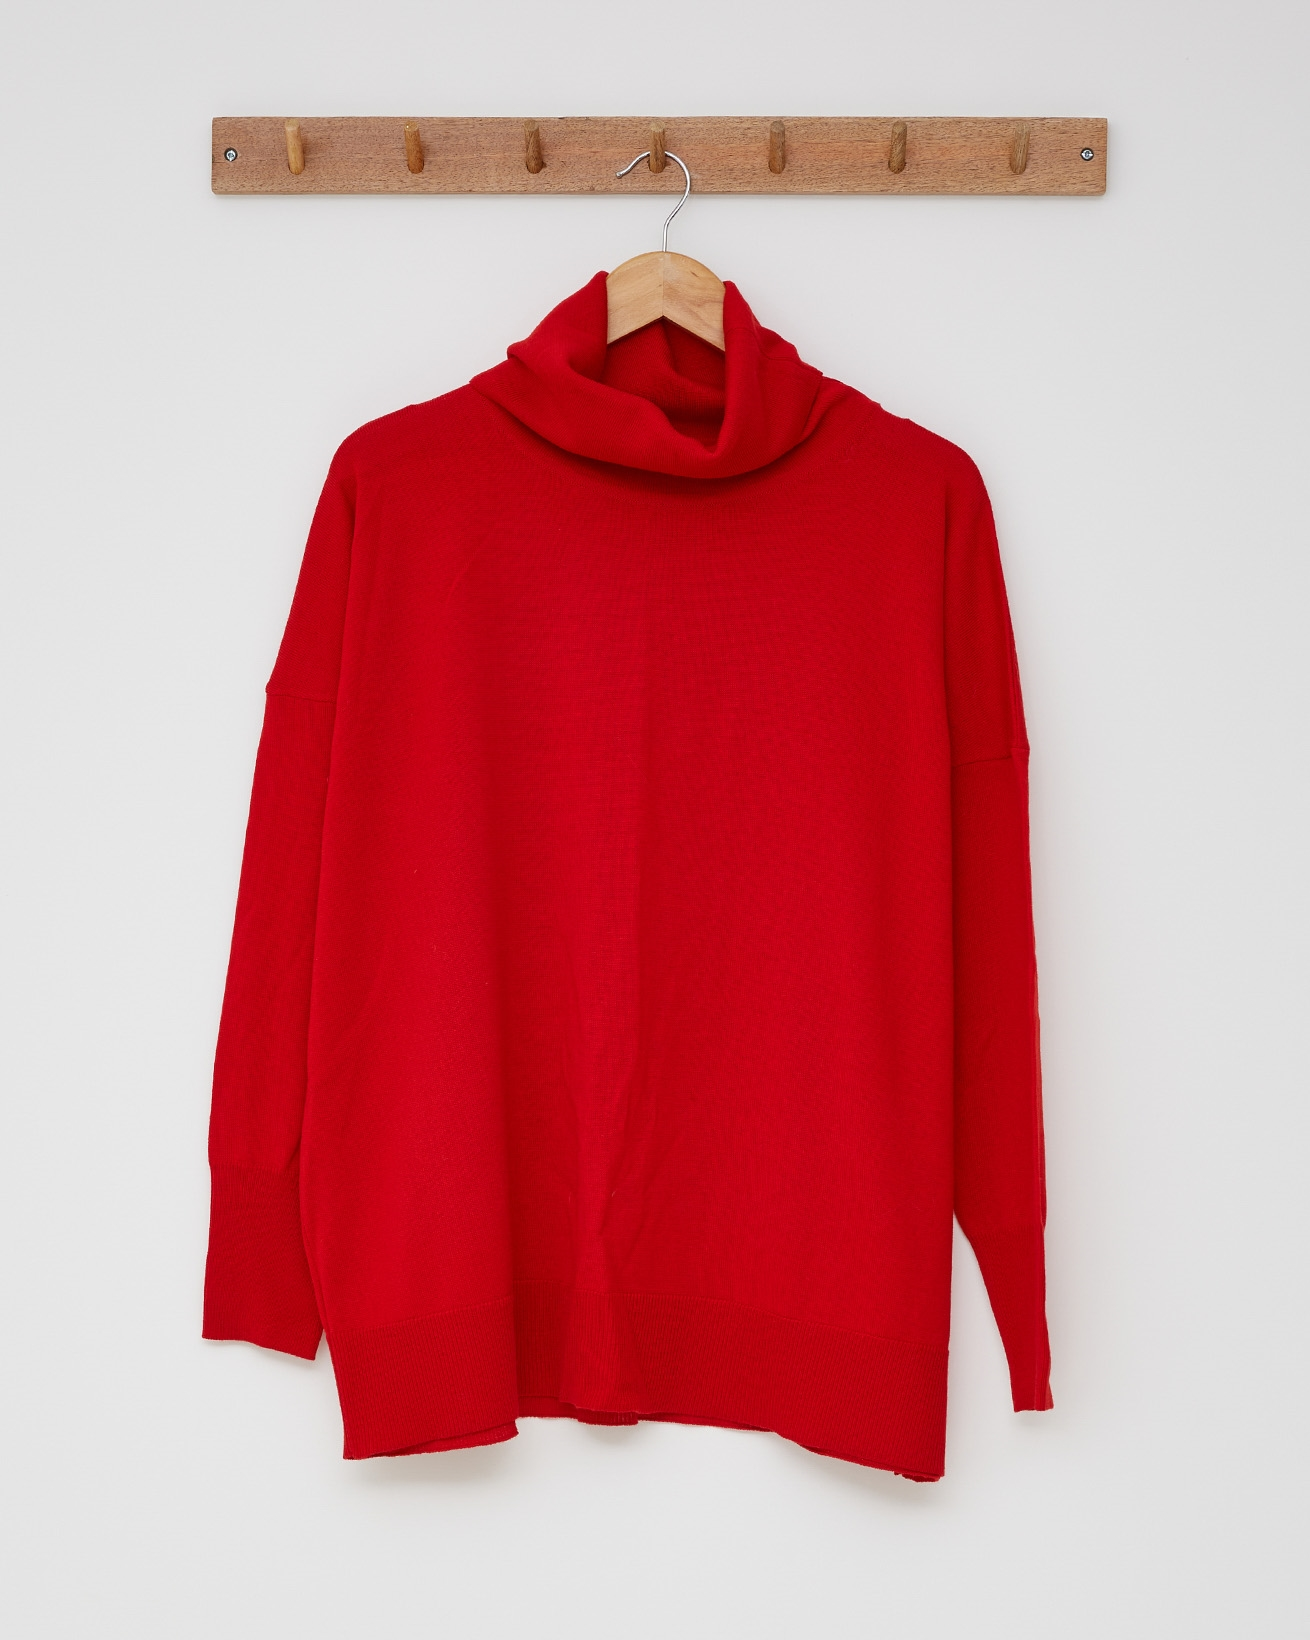 Slouchy Fine Knit Roll Neck Jumper - Size Small -  Pillarbox Red - 2427